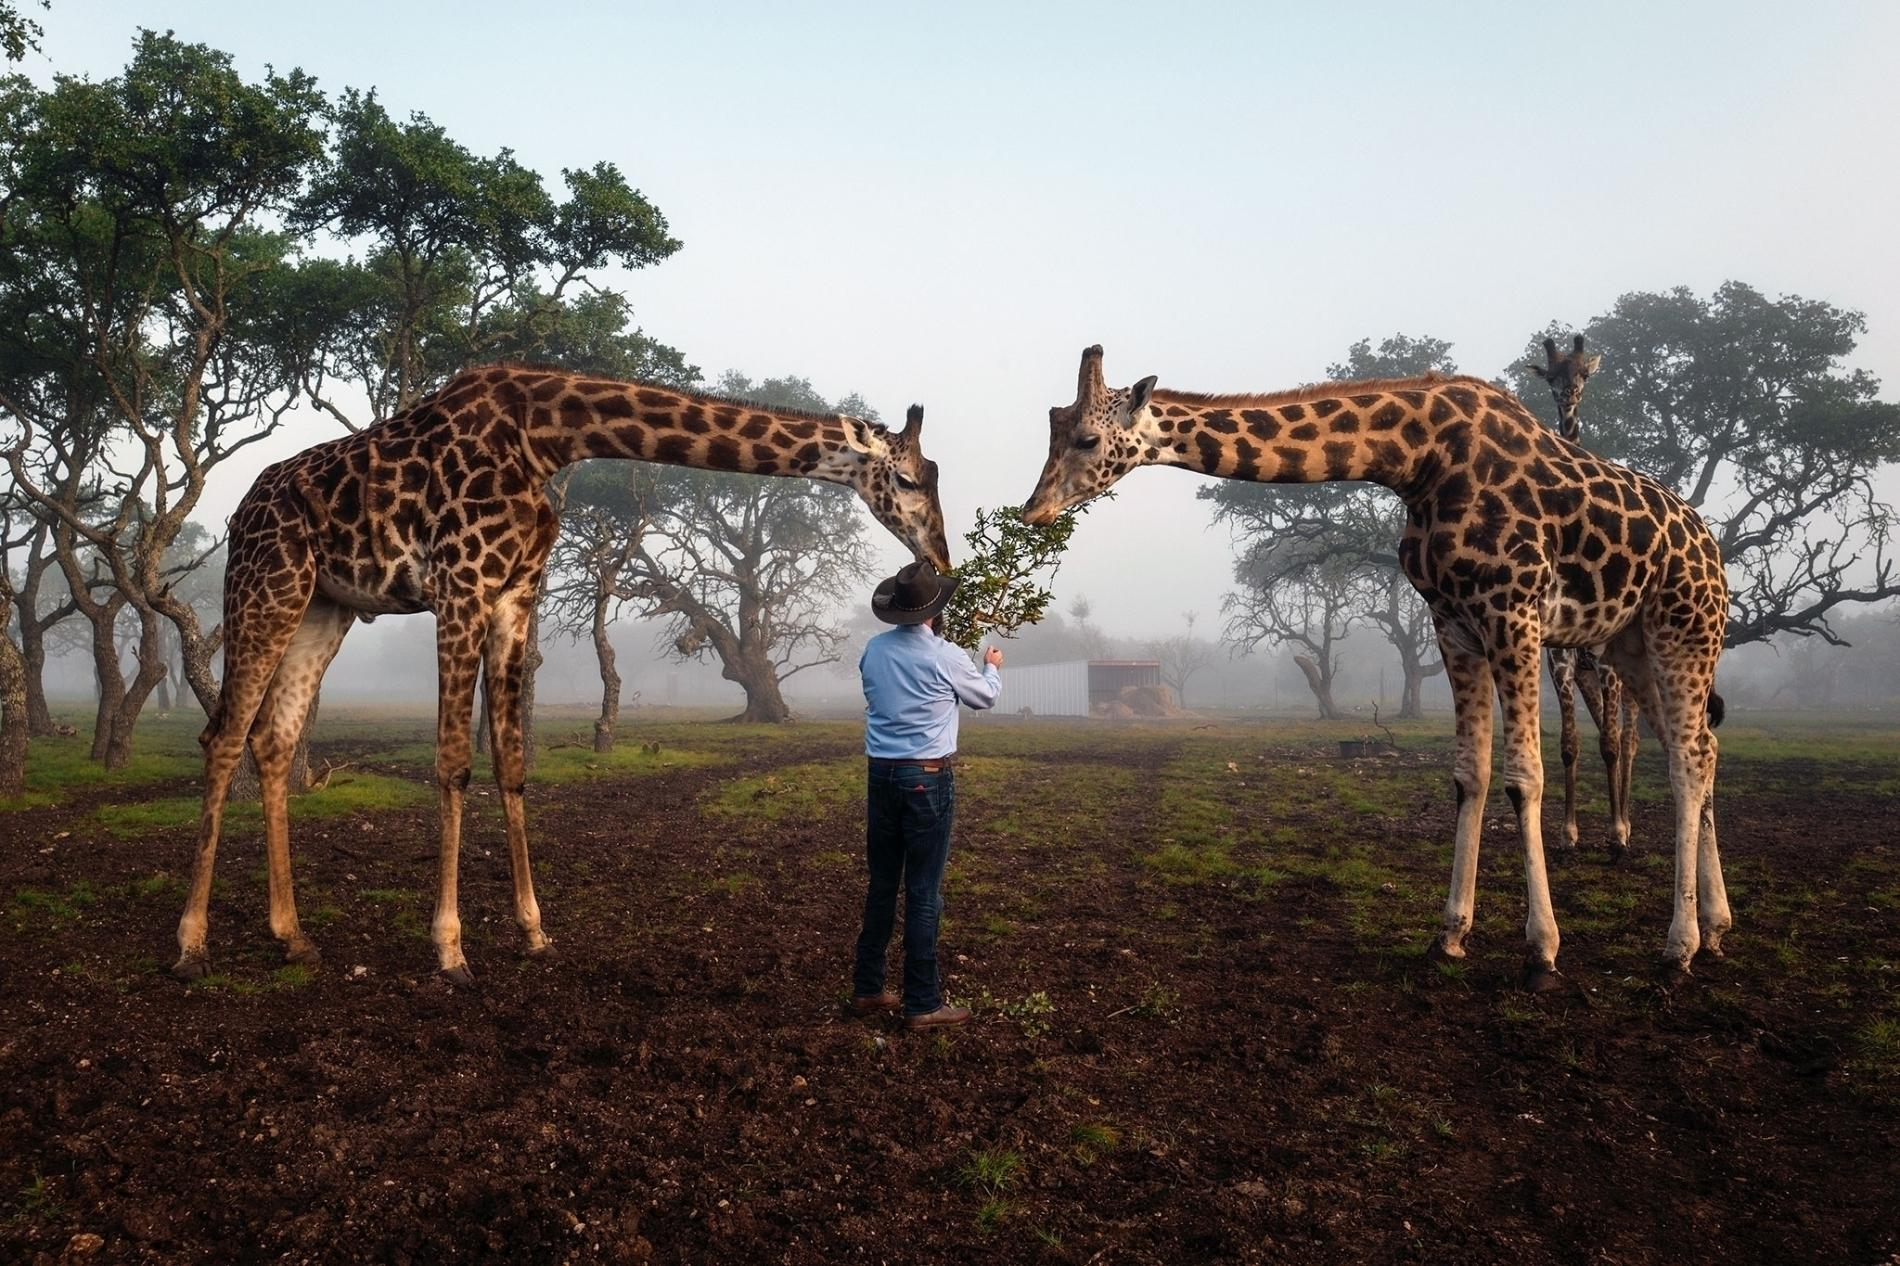 A Behind-The-Scenes Look At Texas' Exotic Animal Ranches